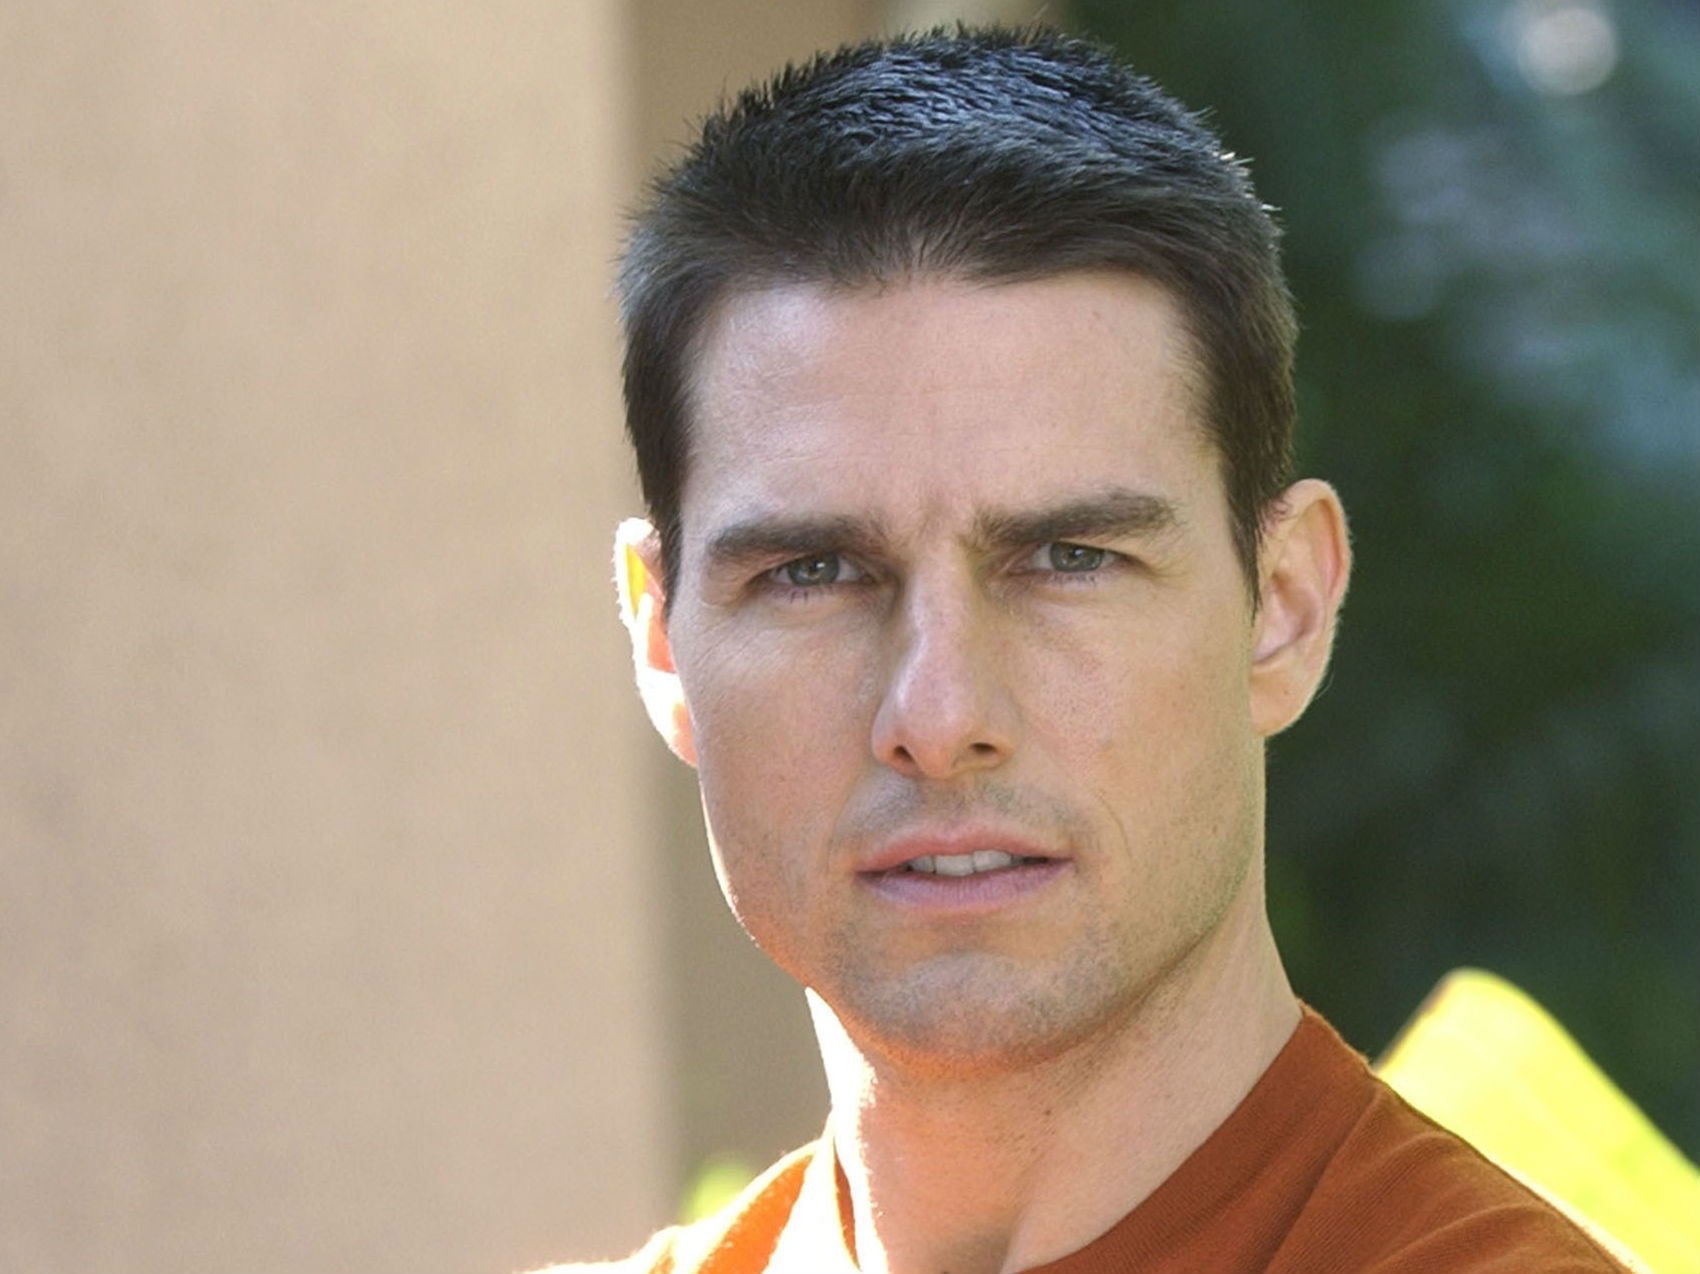 Funny Facts About Tom Cruise 8 Desktop Wallpaper